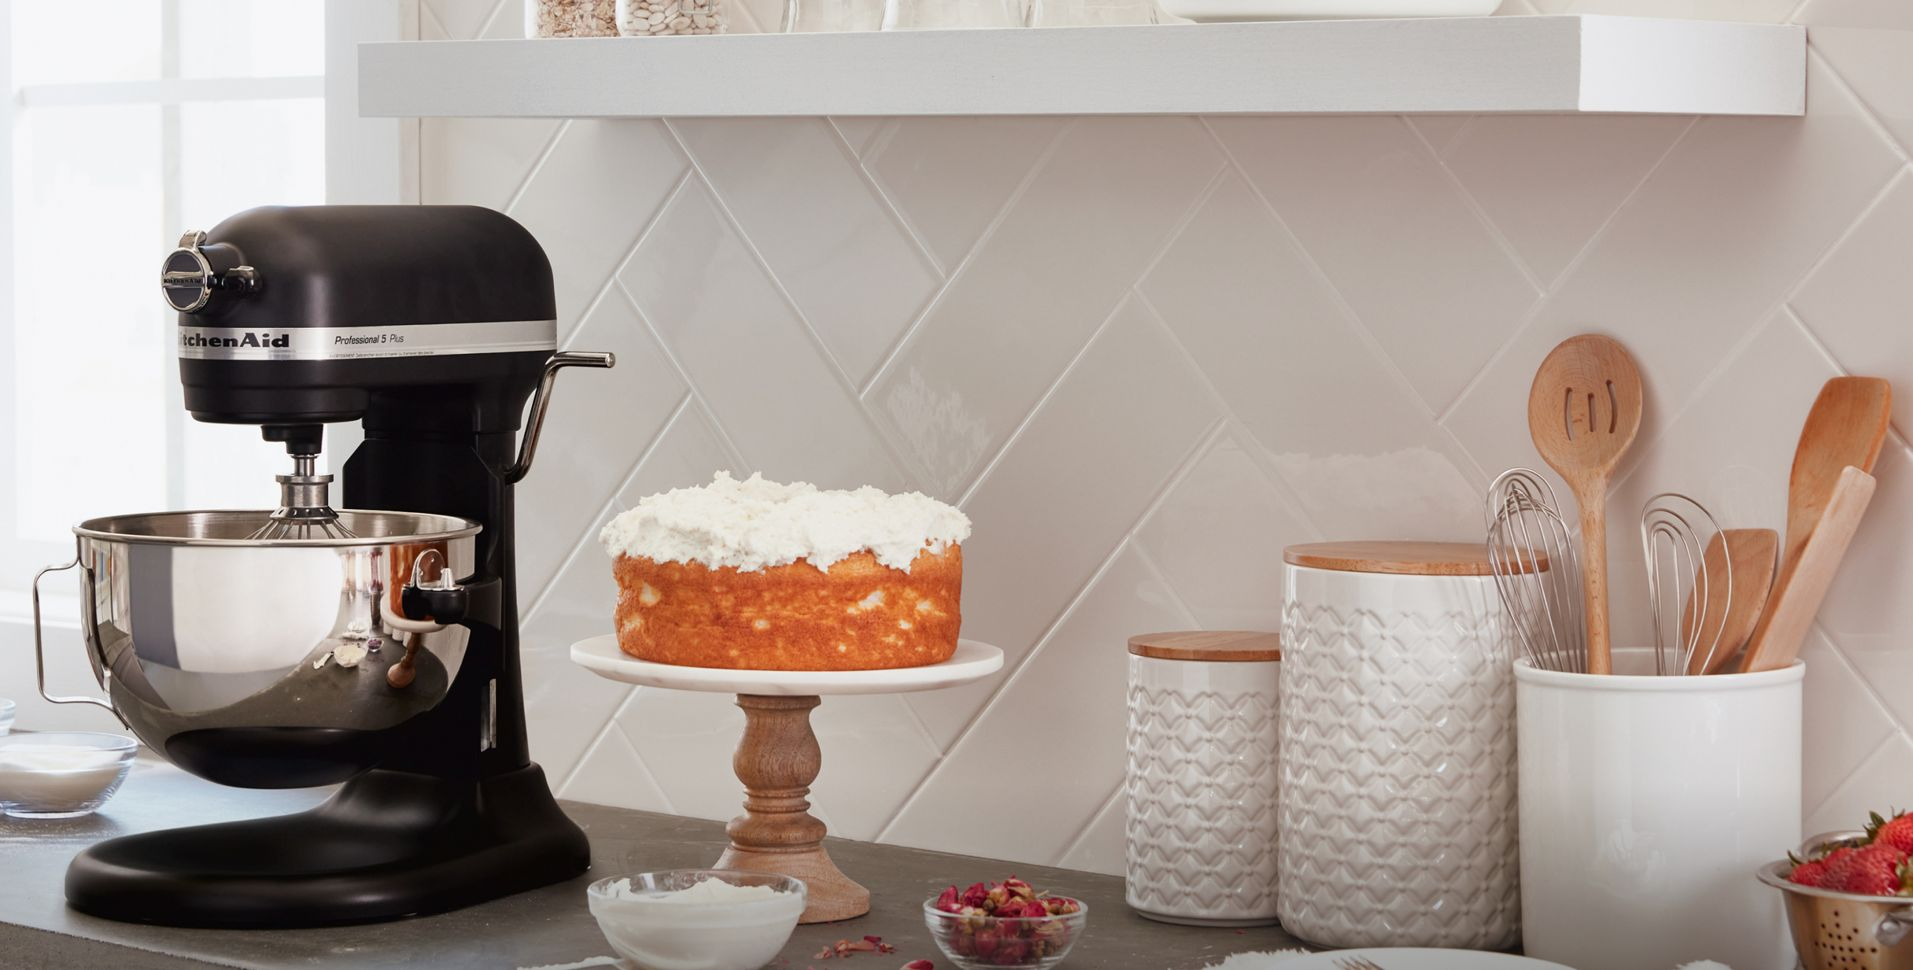 A KitchenAid® Stand Mixer on counter beside a cake